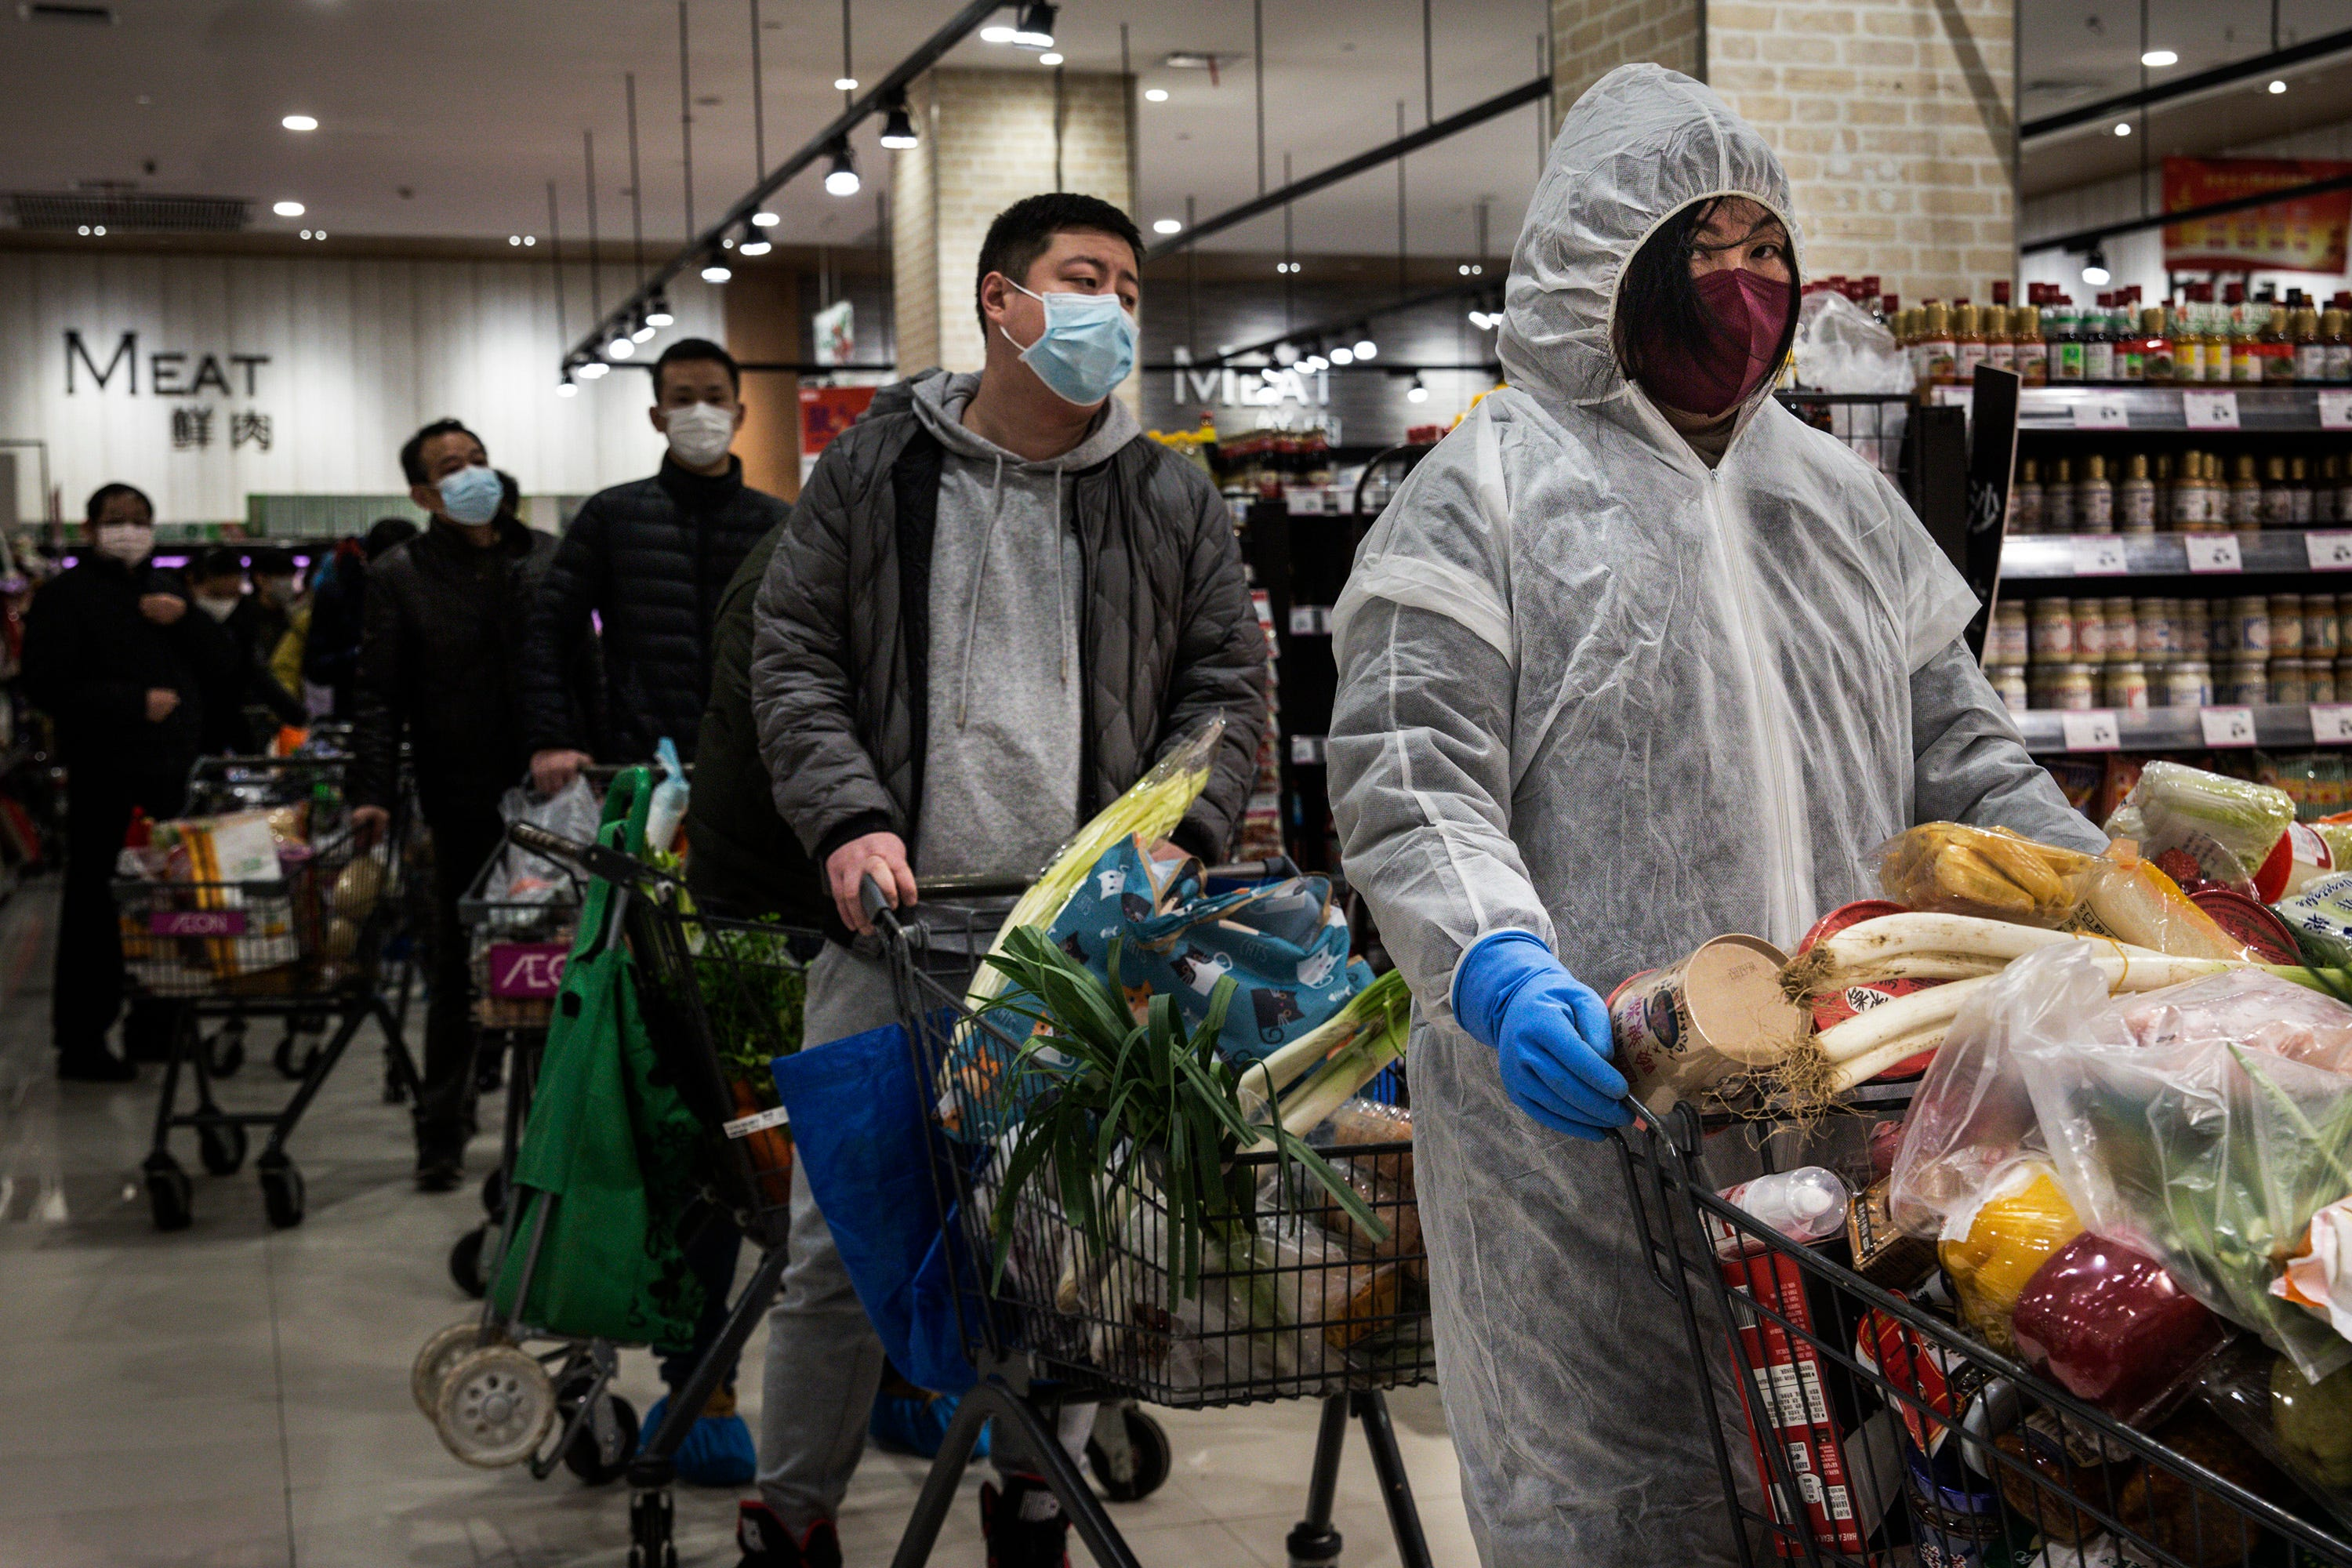 People wear protective masks as they line up in a supermarket on Feb. 12 in Wuhan, China.